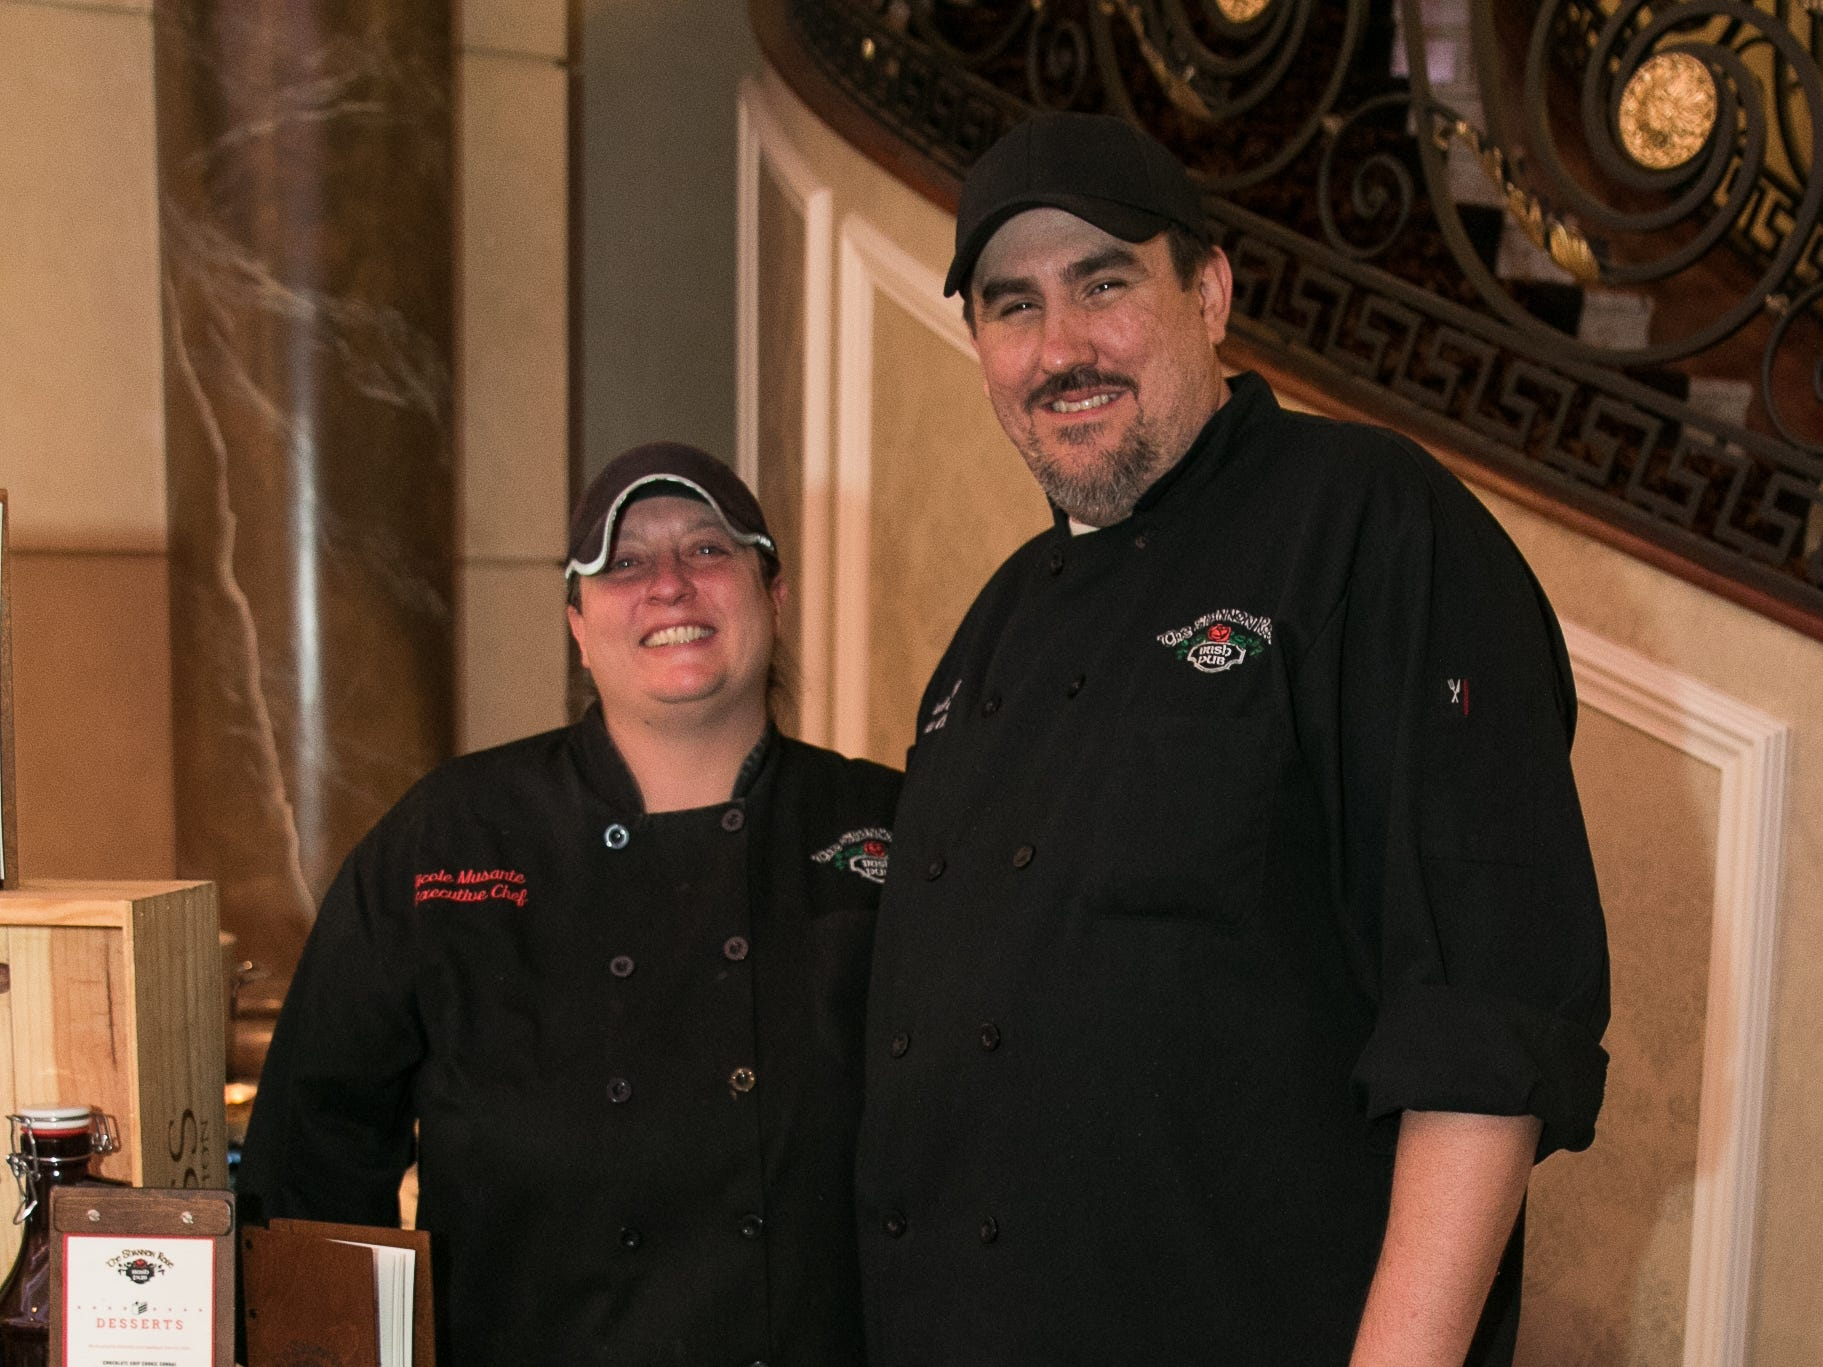 """The Shannon Rose. The New Bridge Medical Center Foundation held its 10th Annual """"A Taste of Bergen"""" at The Venetian in Garfield. The evening featured celebrity chef Chris Holland, the 2017 Grand Champion of the Food Network's """"Chopped."""" 11/12/2018"""